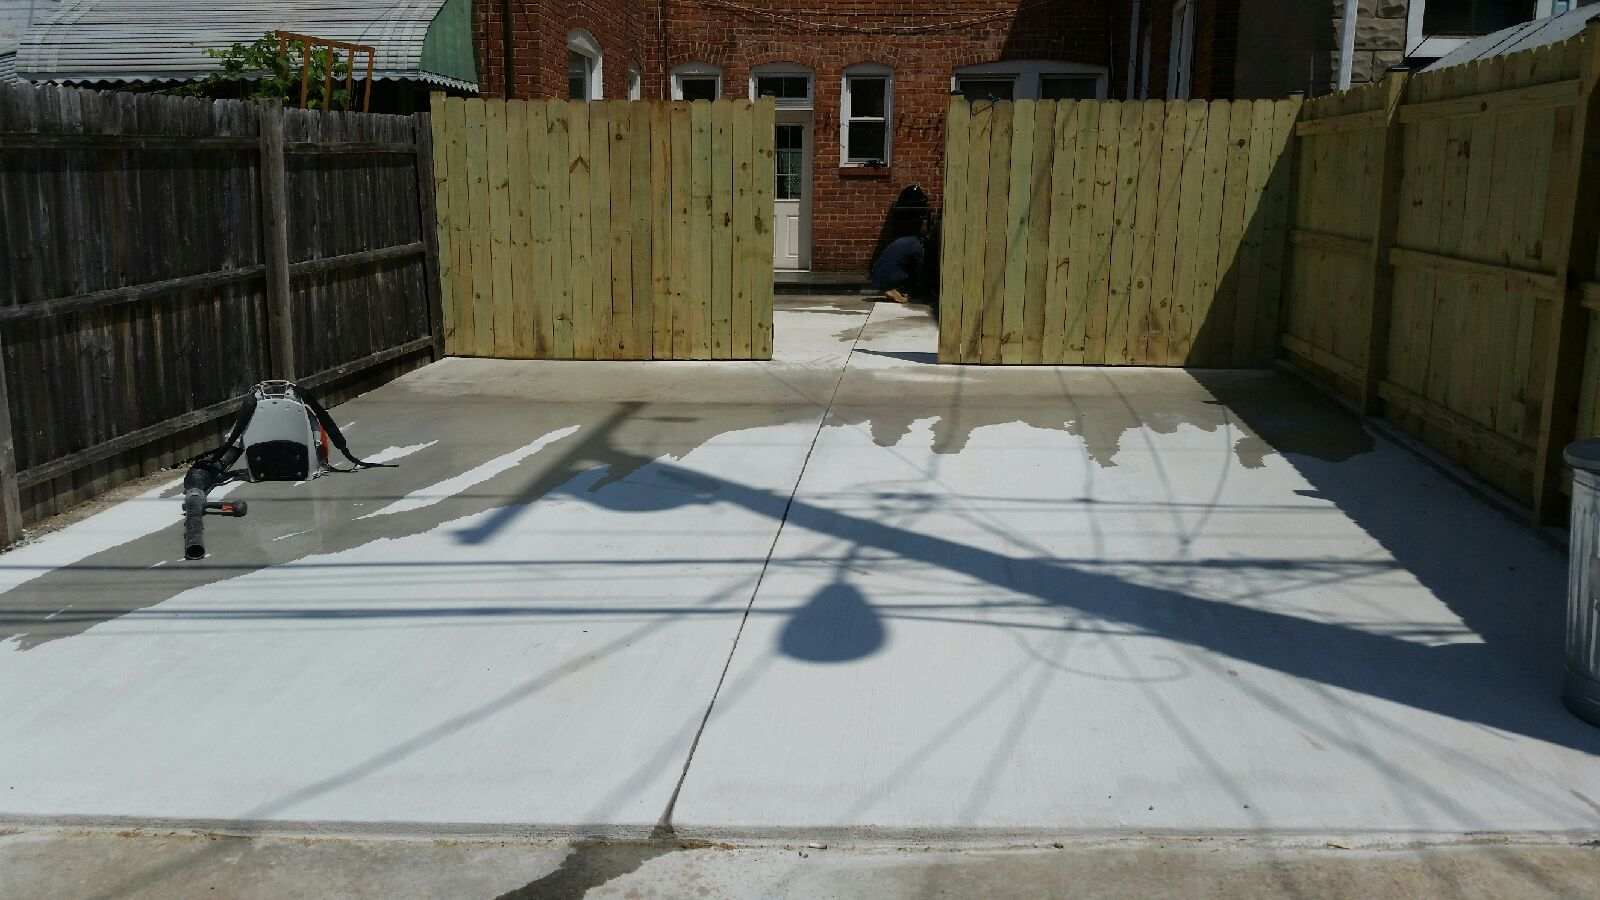 Baltimore Patio And Parking Pad Installation This Is In The Hampden Neighborhood We Service Entire Area Free Estimates